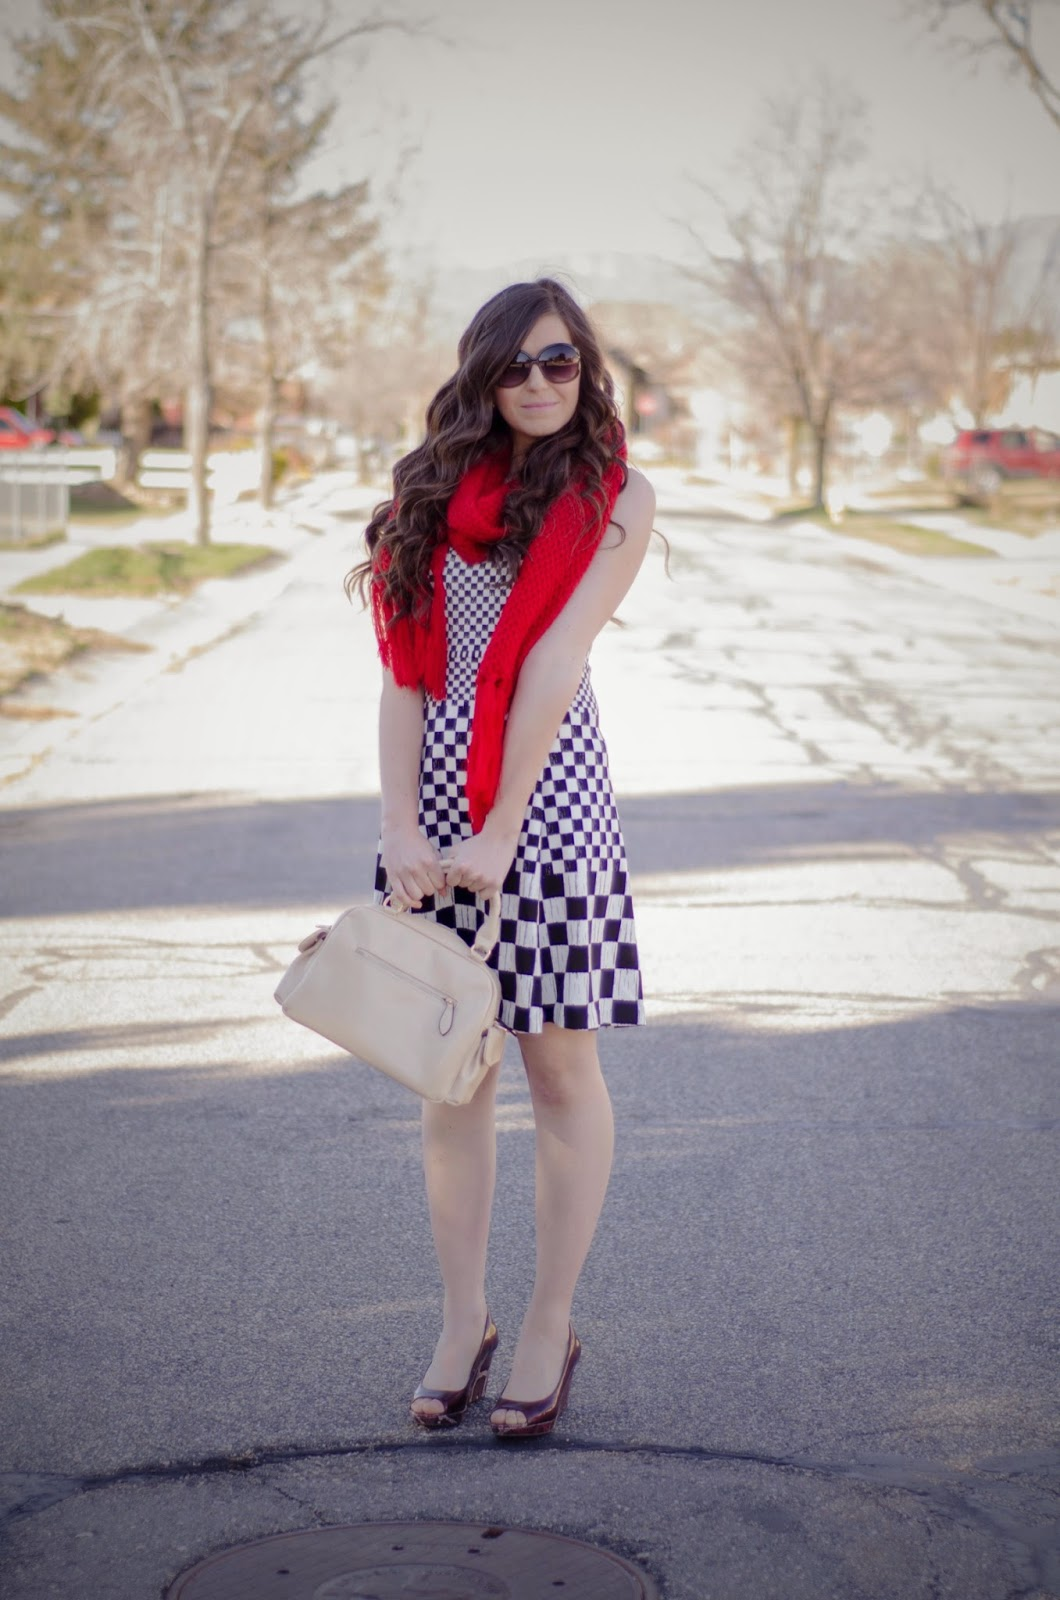 checkered dress, red scarf, pop of red, jcpenneys, jcp dress, jcpenneys dress, downeast basics, bag, purse, pretty, cute, summer vacation,